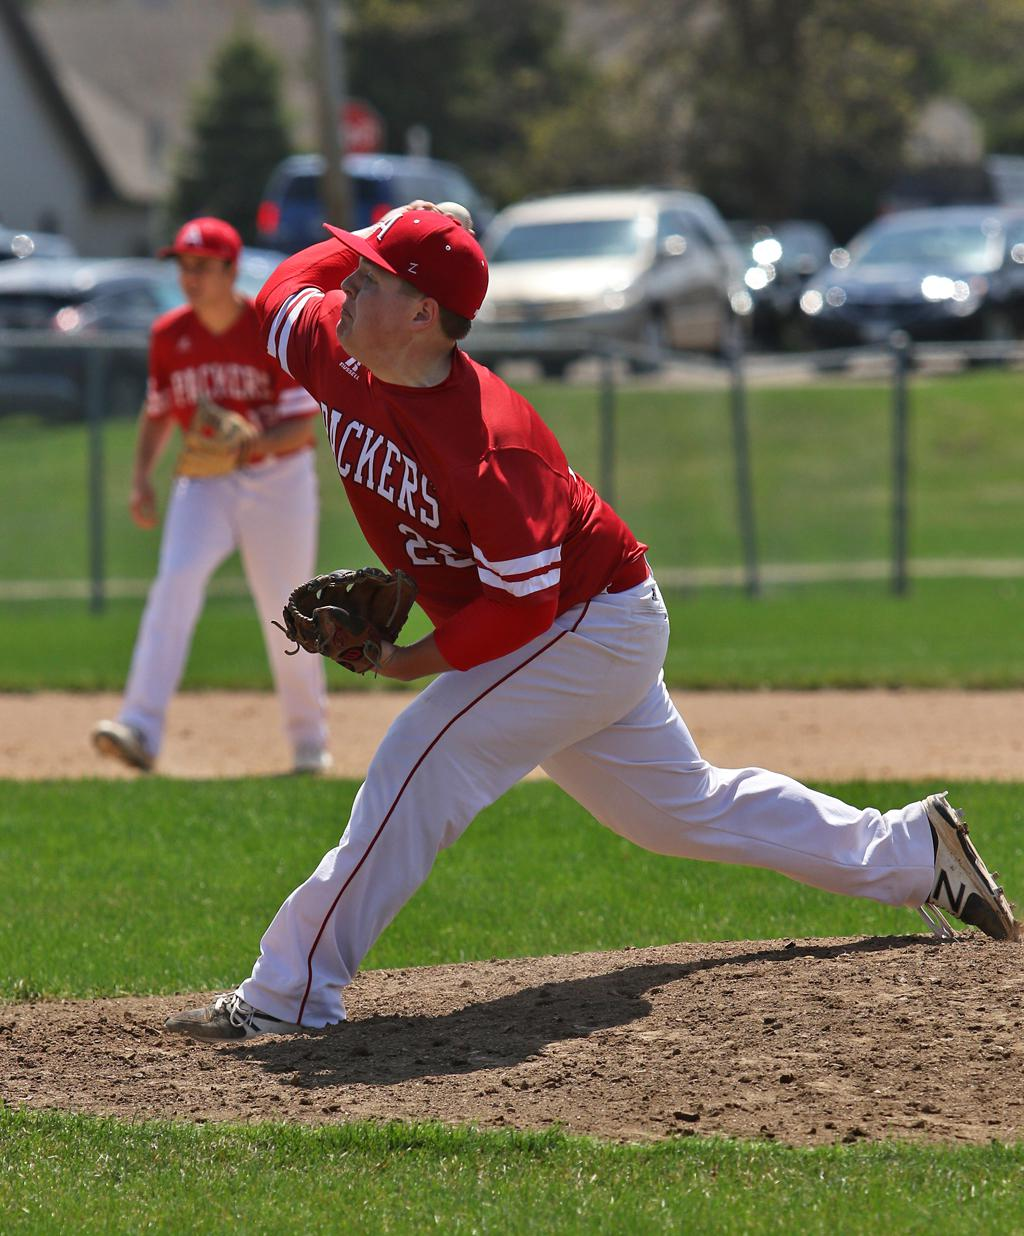 Michael O'Connor struck out nine batters in the Packers' 3-1 win over the Raiders at Northfield High School. Photo by Cheryl Myers, SportsEngine